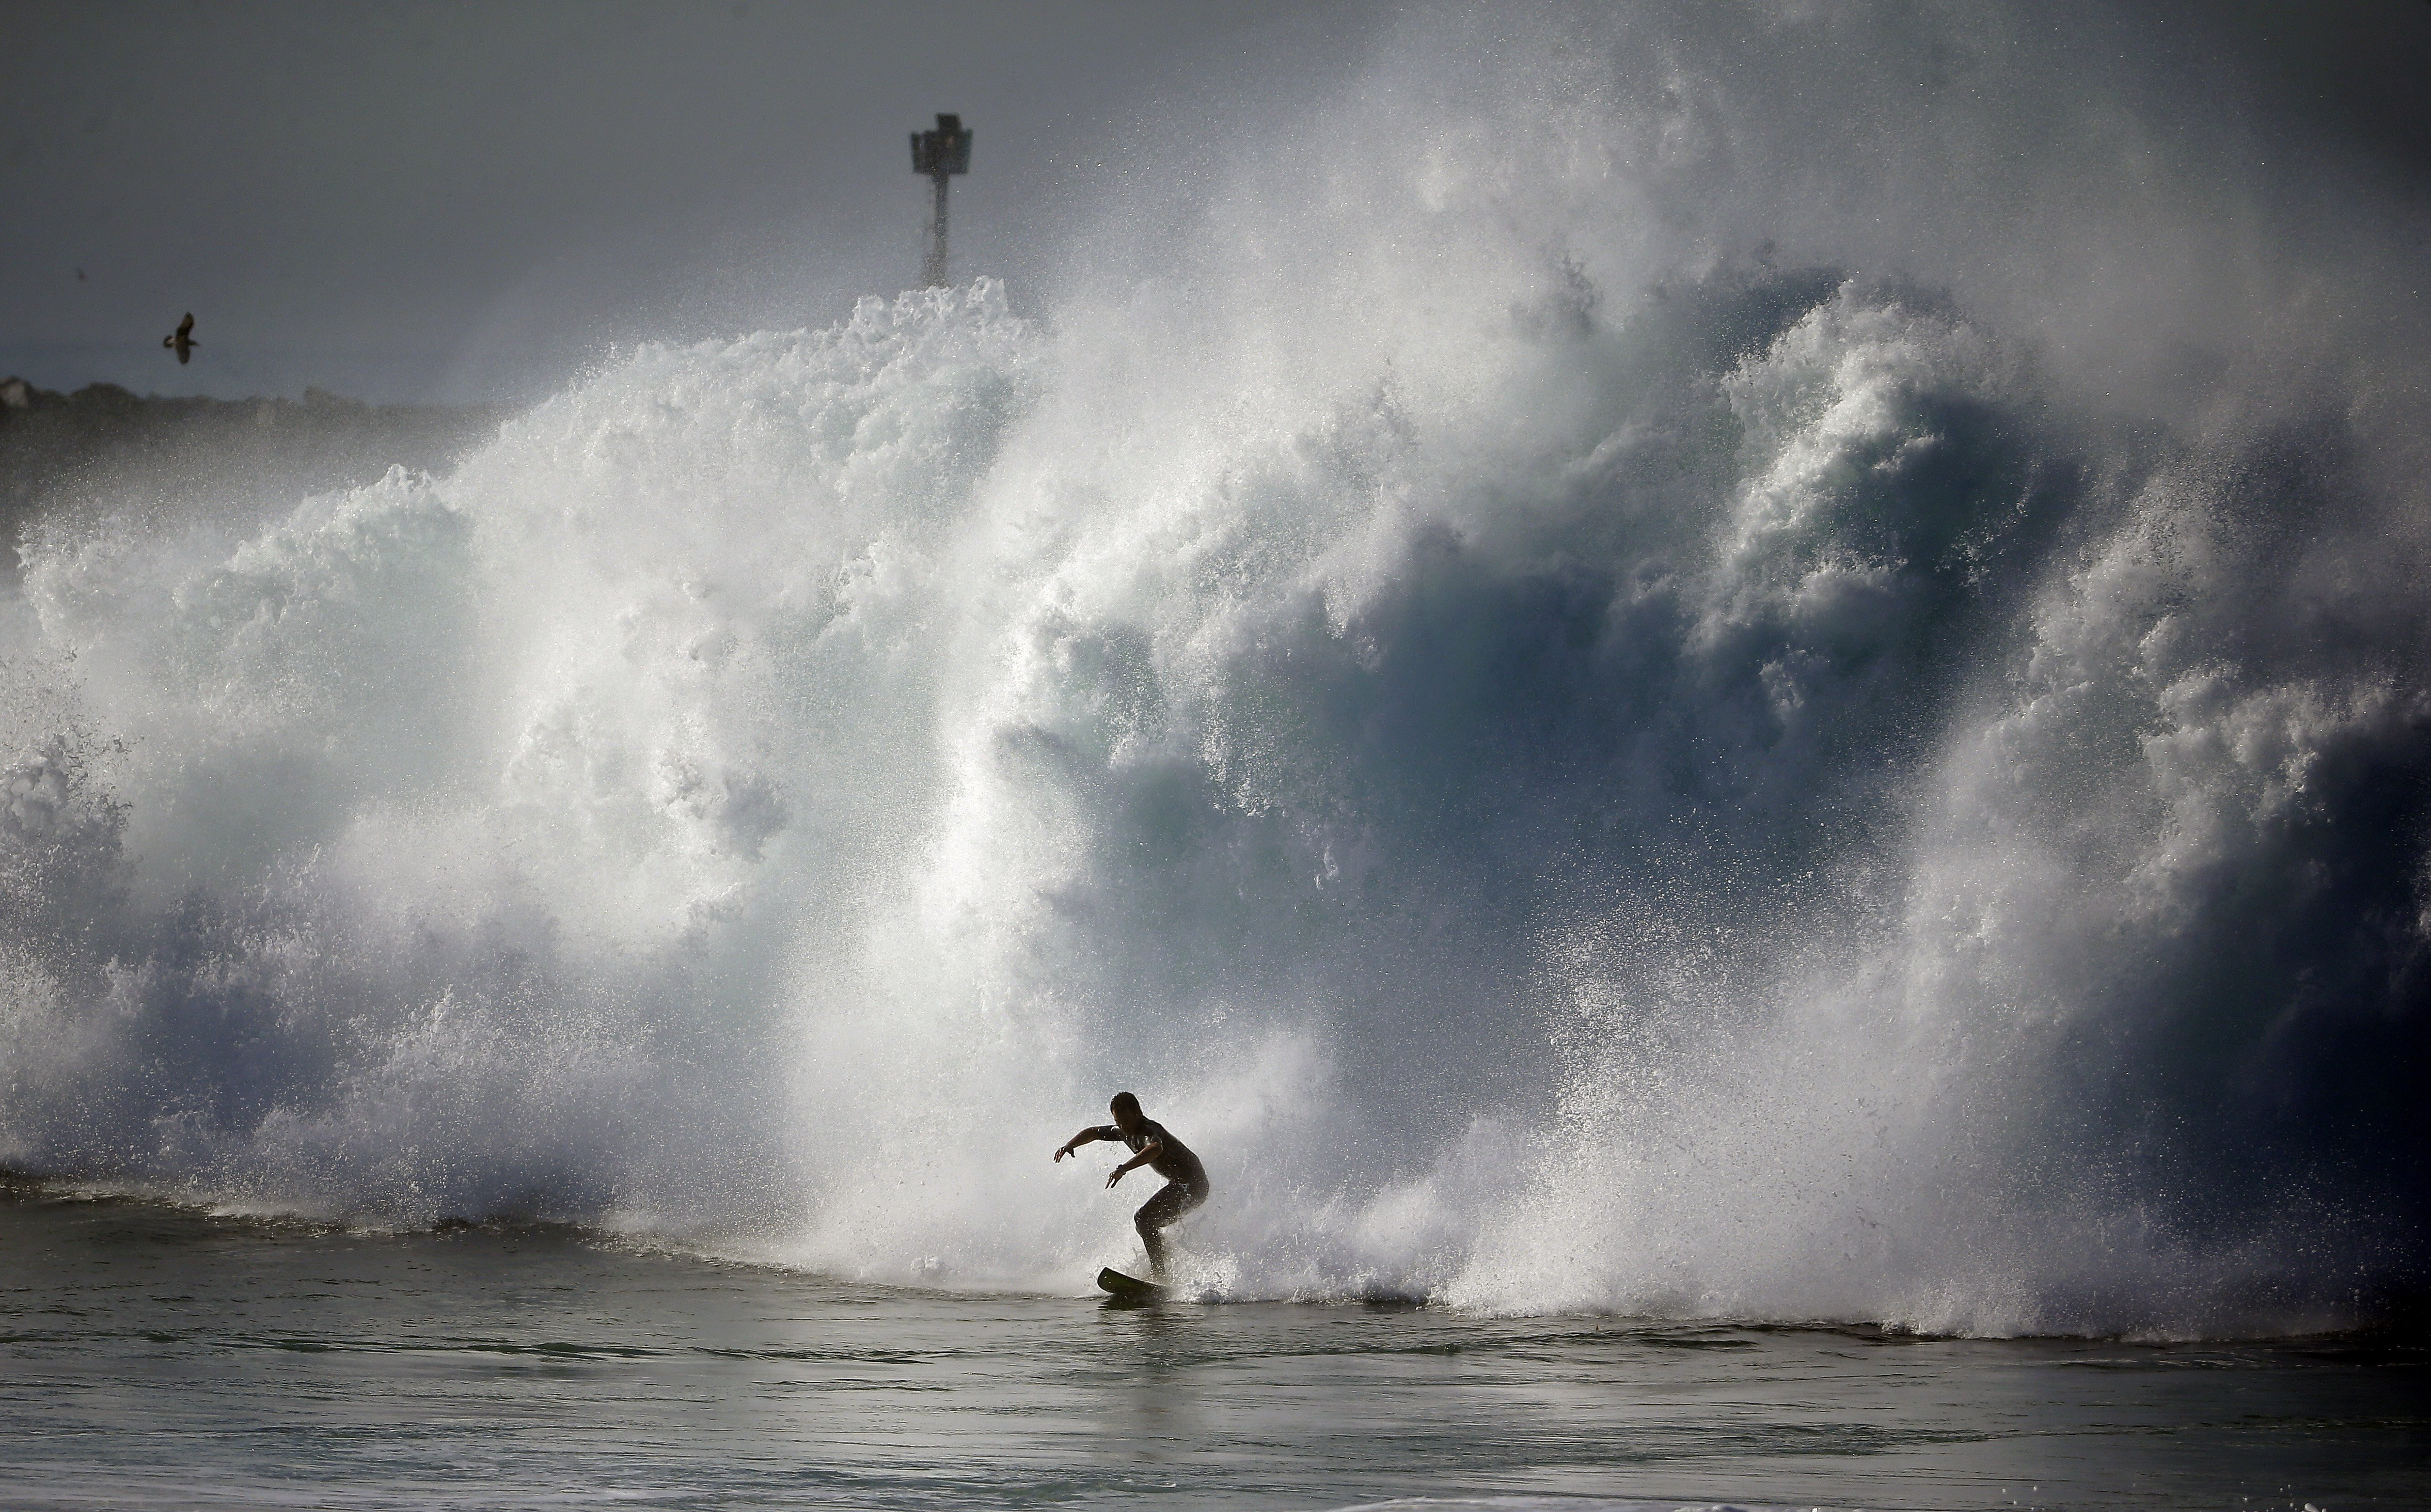 A surfer rides a wave at the wedge in Newport Beach, Calif. on Aug. 27, 2014. Southern California beachgoers experienced much higher than normal surf, brought on by Hurricane Marie spinning off the coast of Mexico.